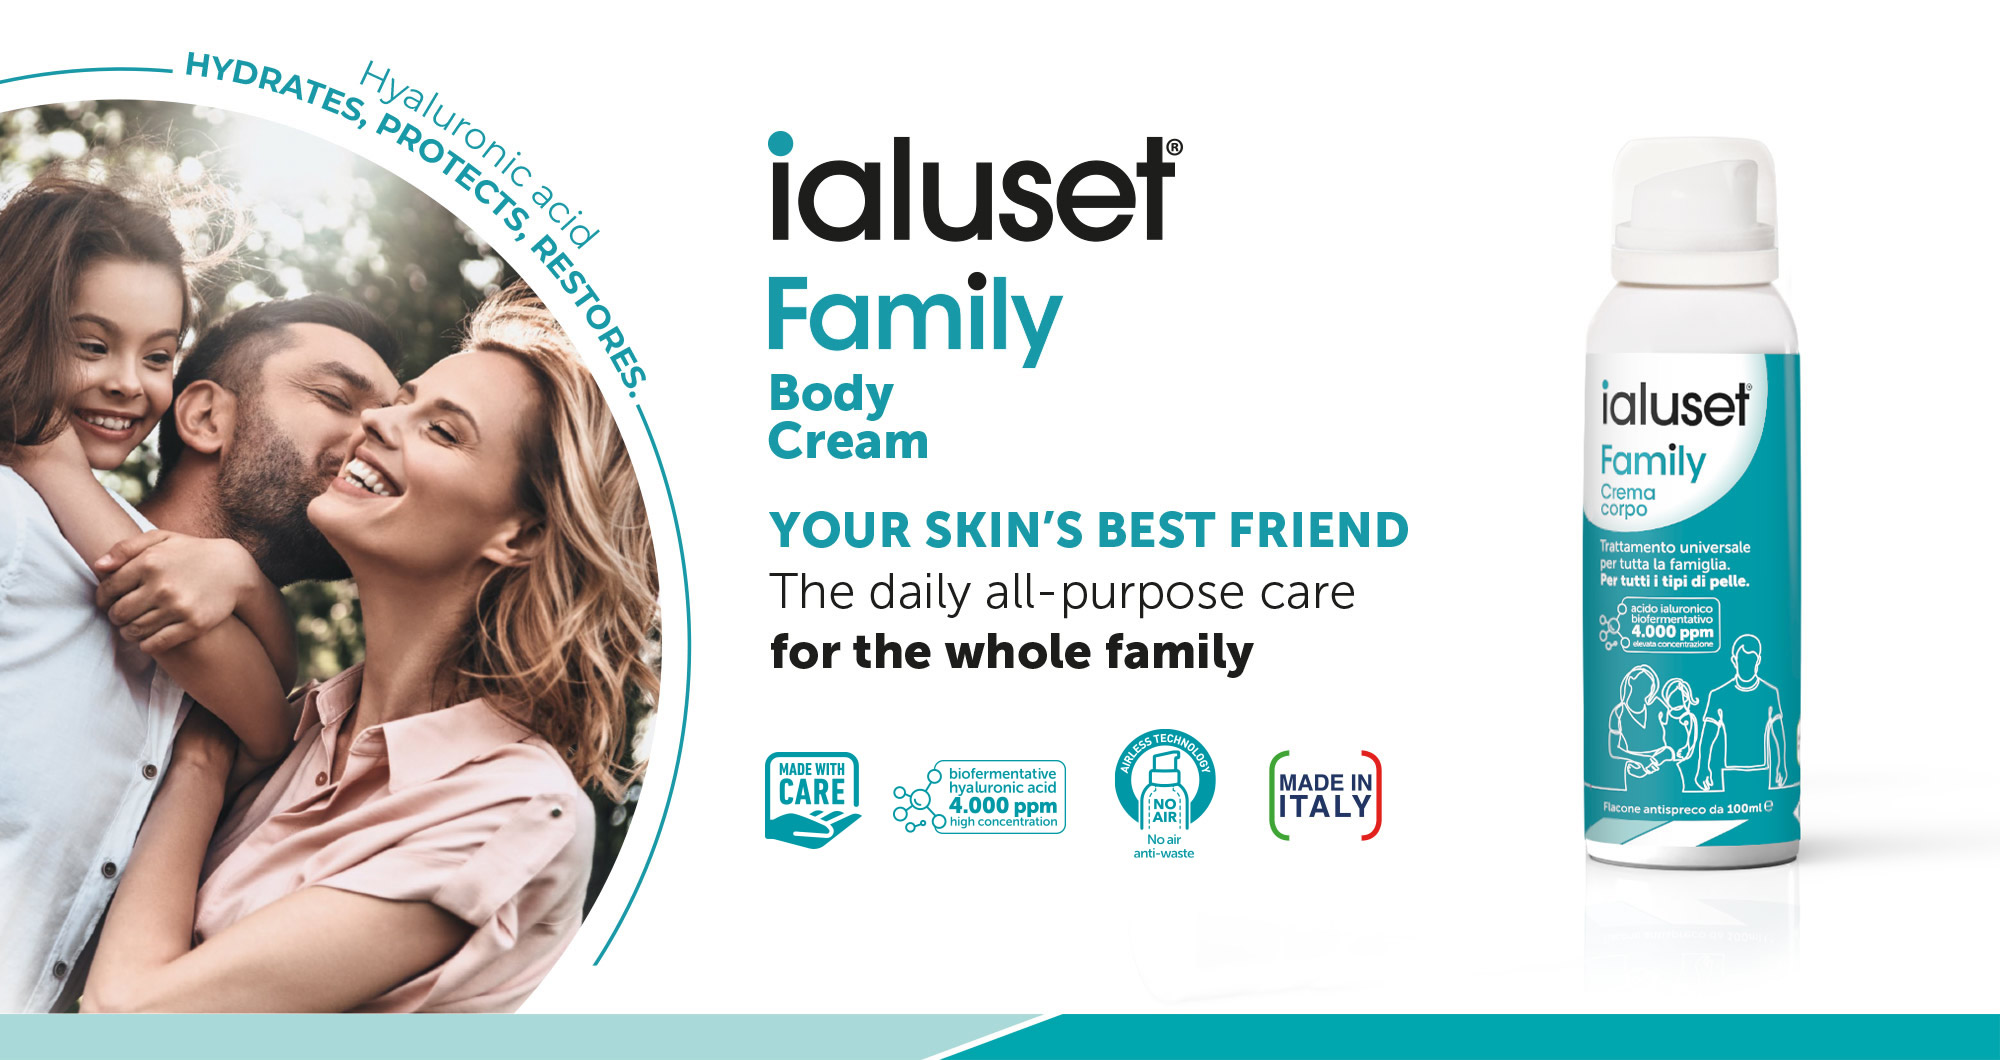 ialuset Family - Your skin's best friend - All-purpose moisturizing treatment for the entire family